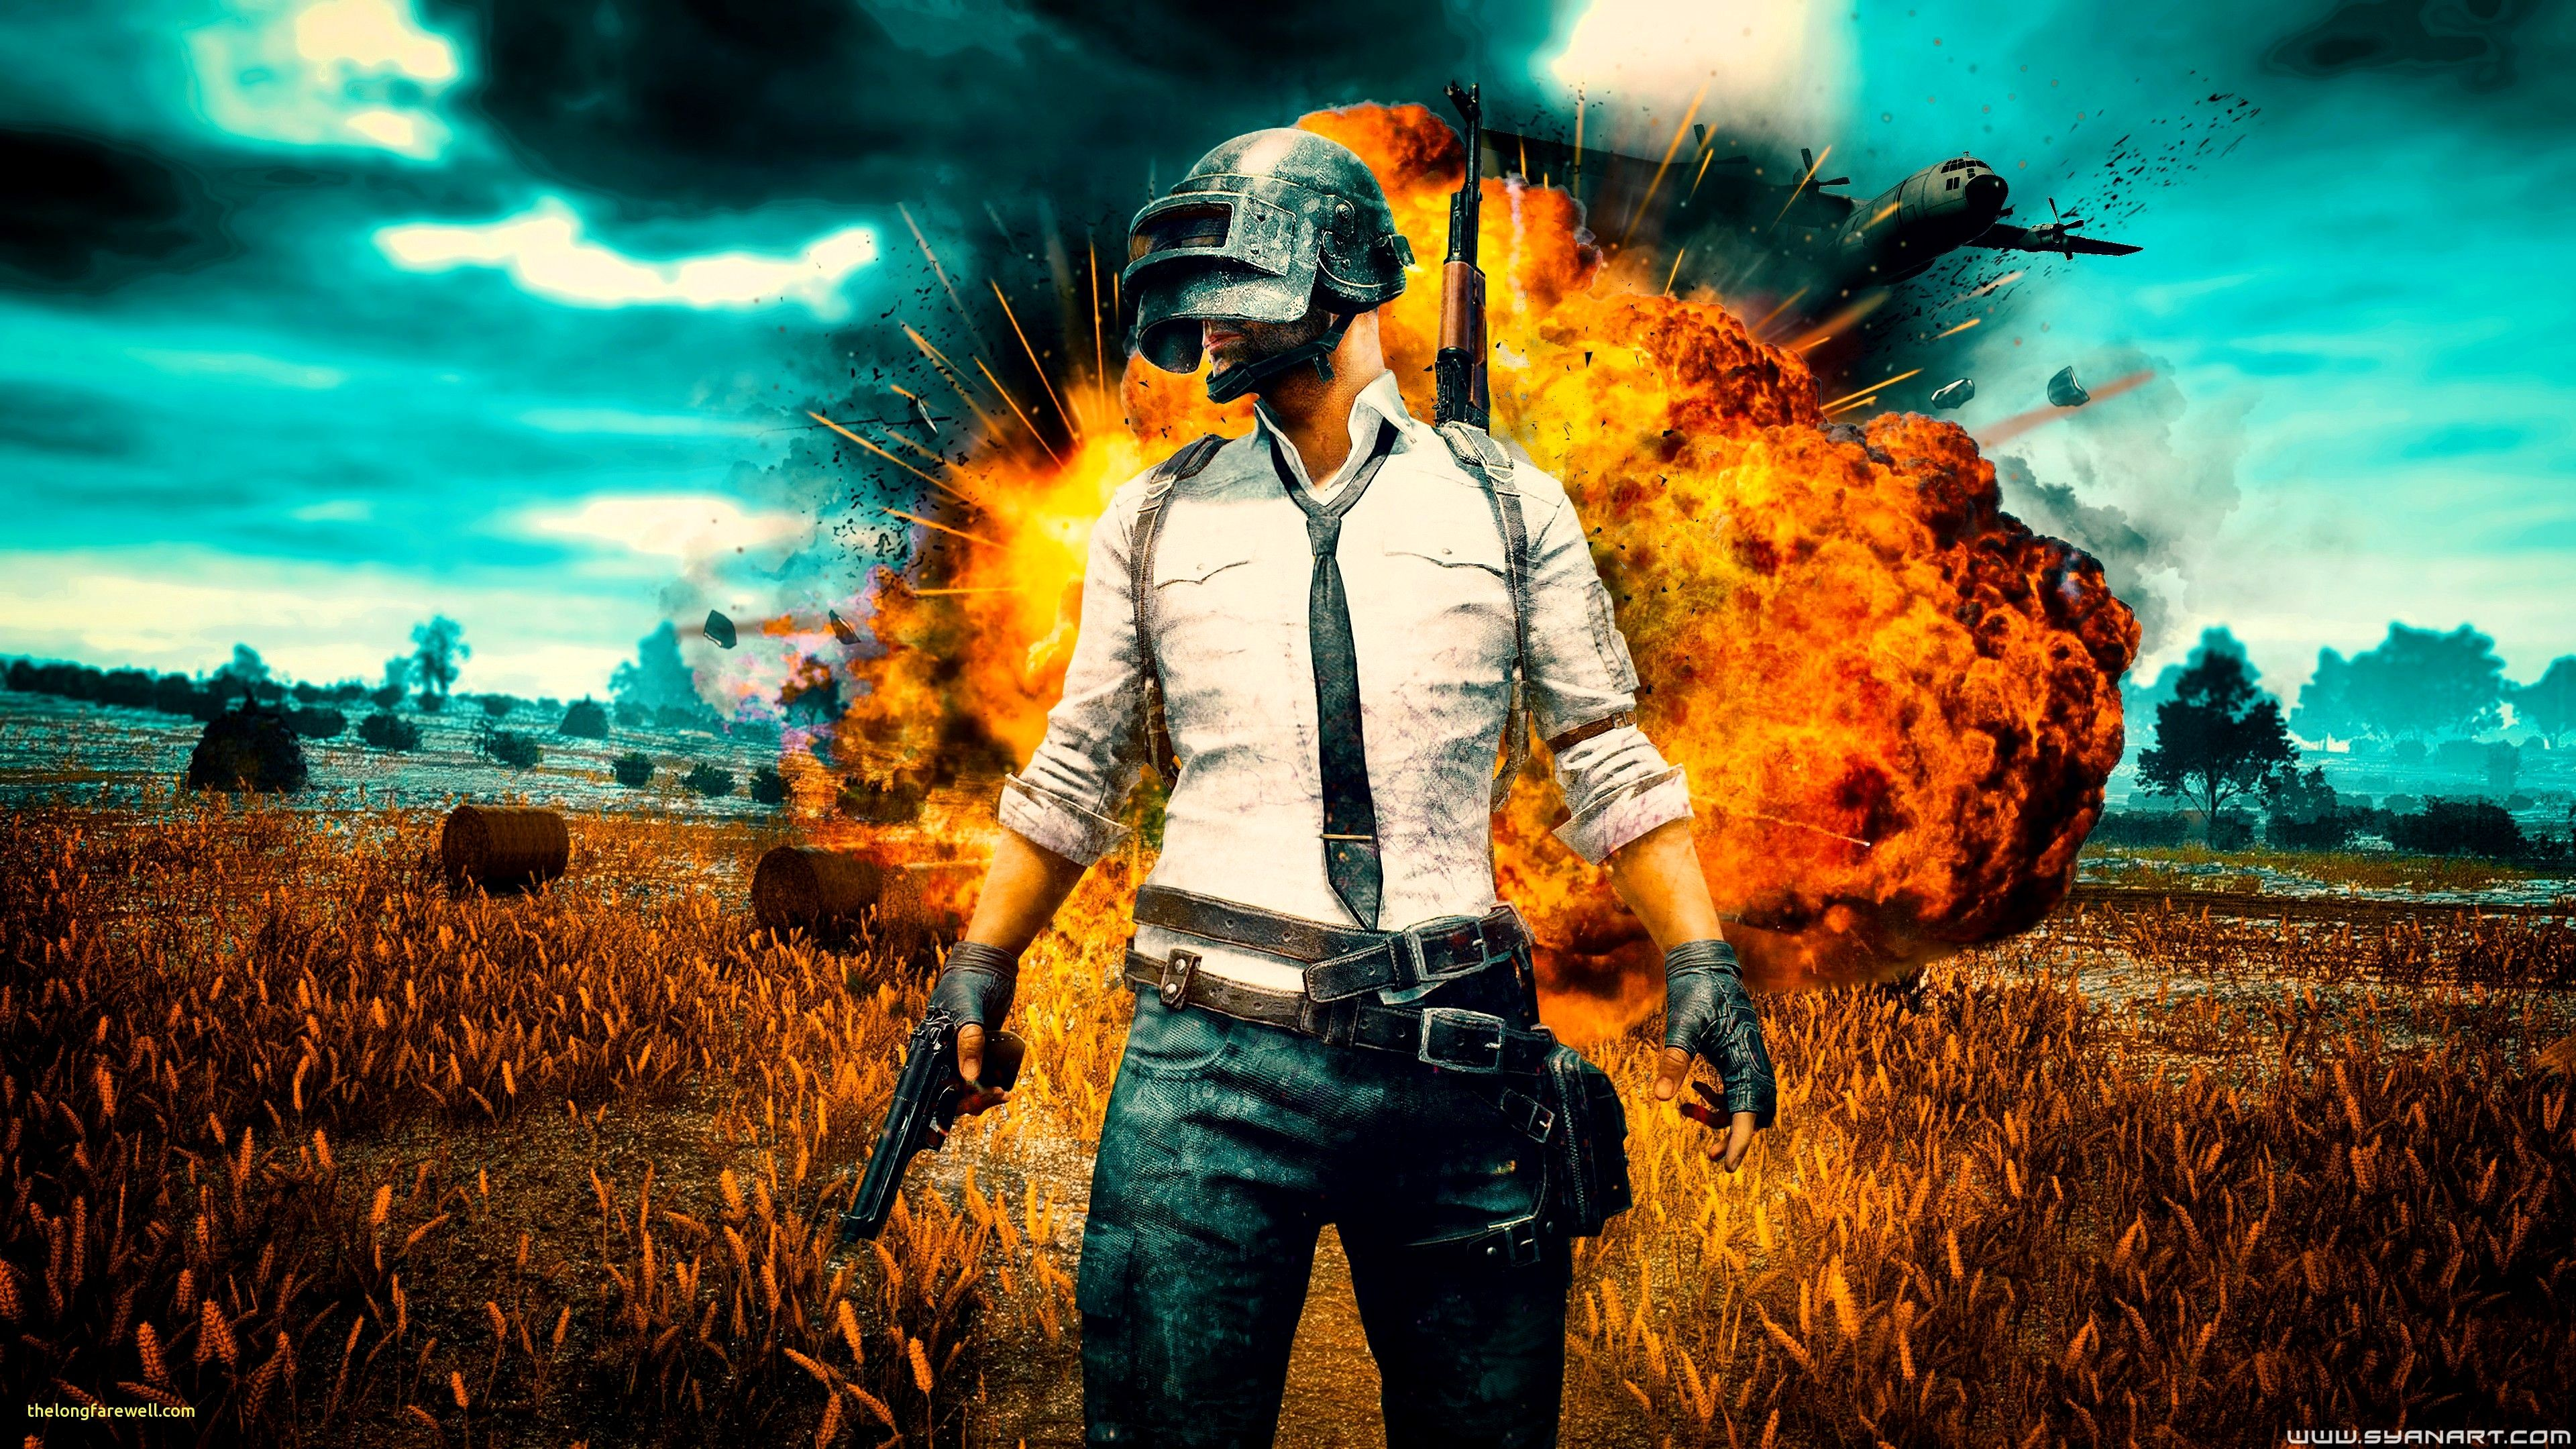 Wallpaper Full Hd 4k Pubg Trick With Images 4k Wallpapers For